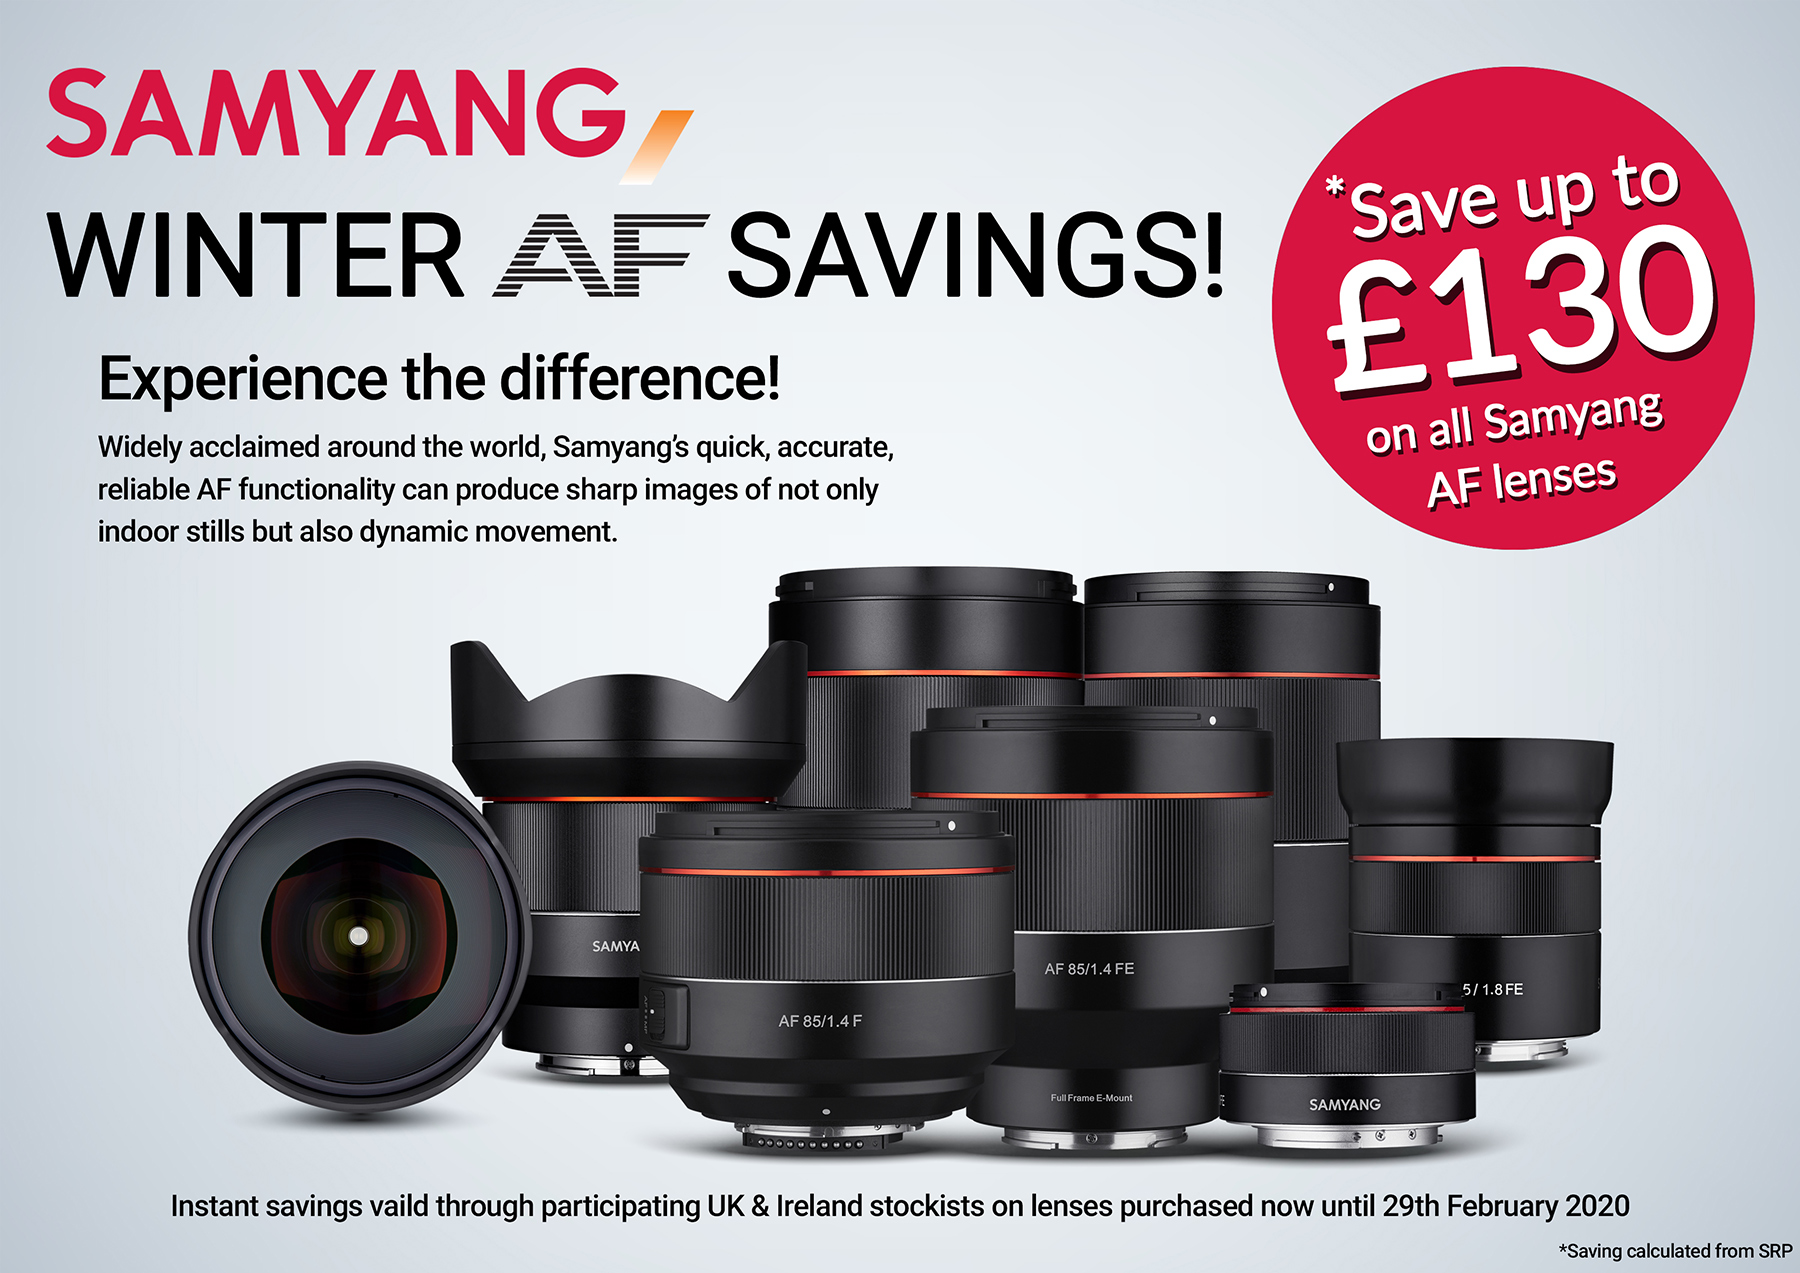 Samyang AF lens winter savings